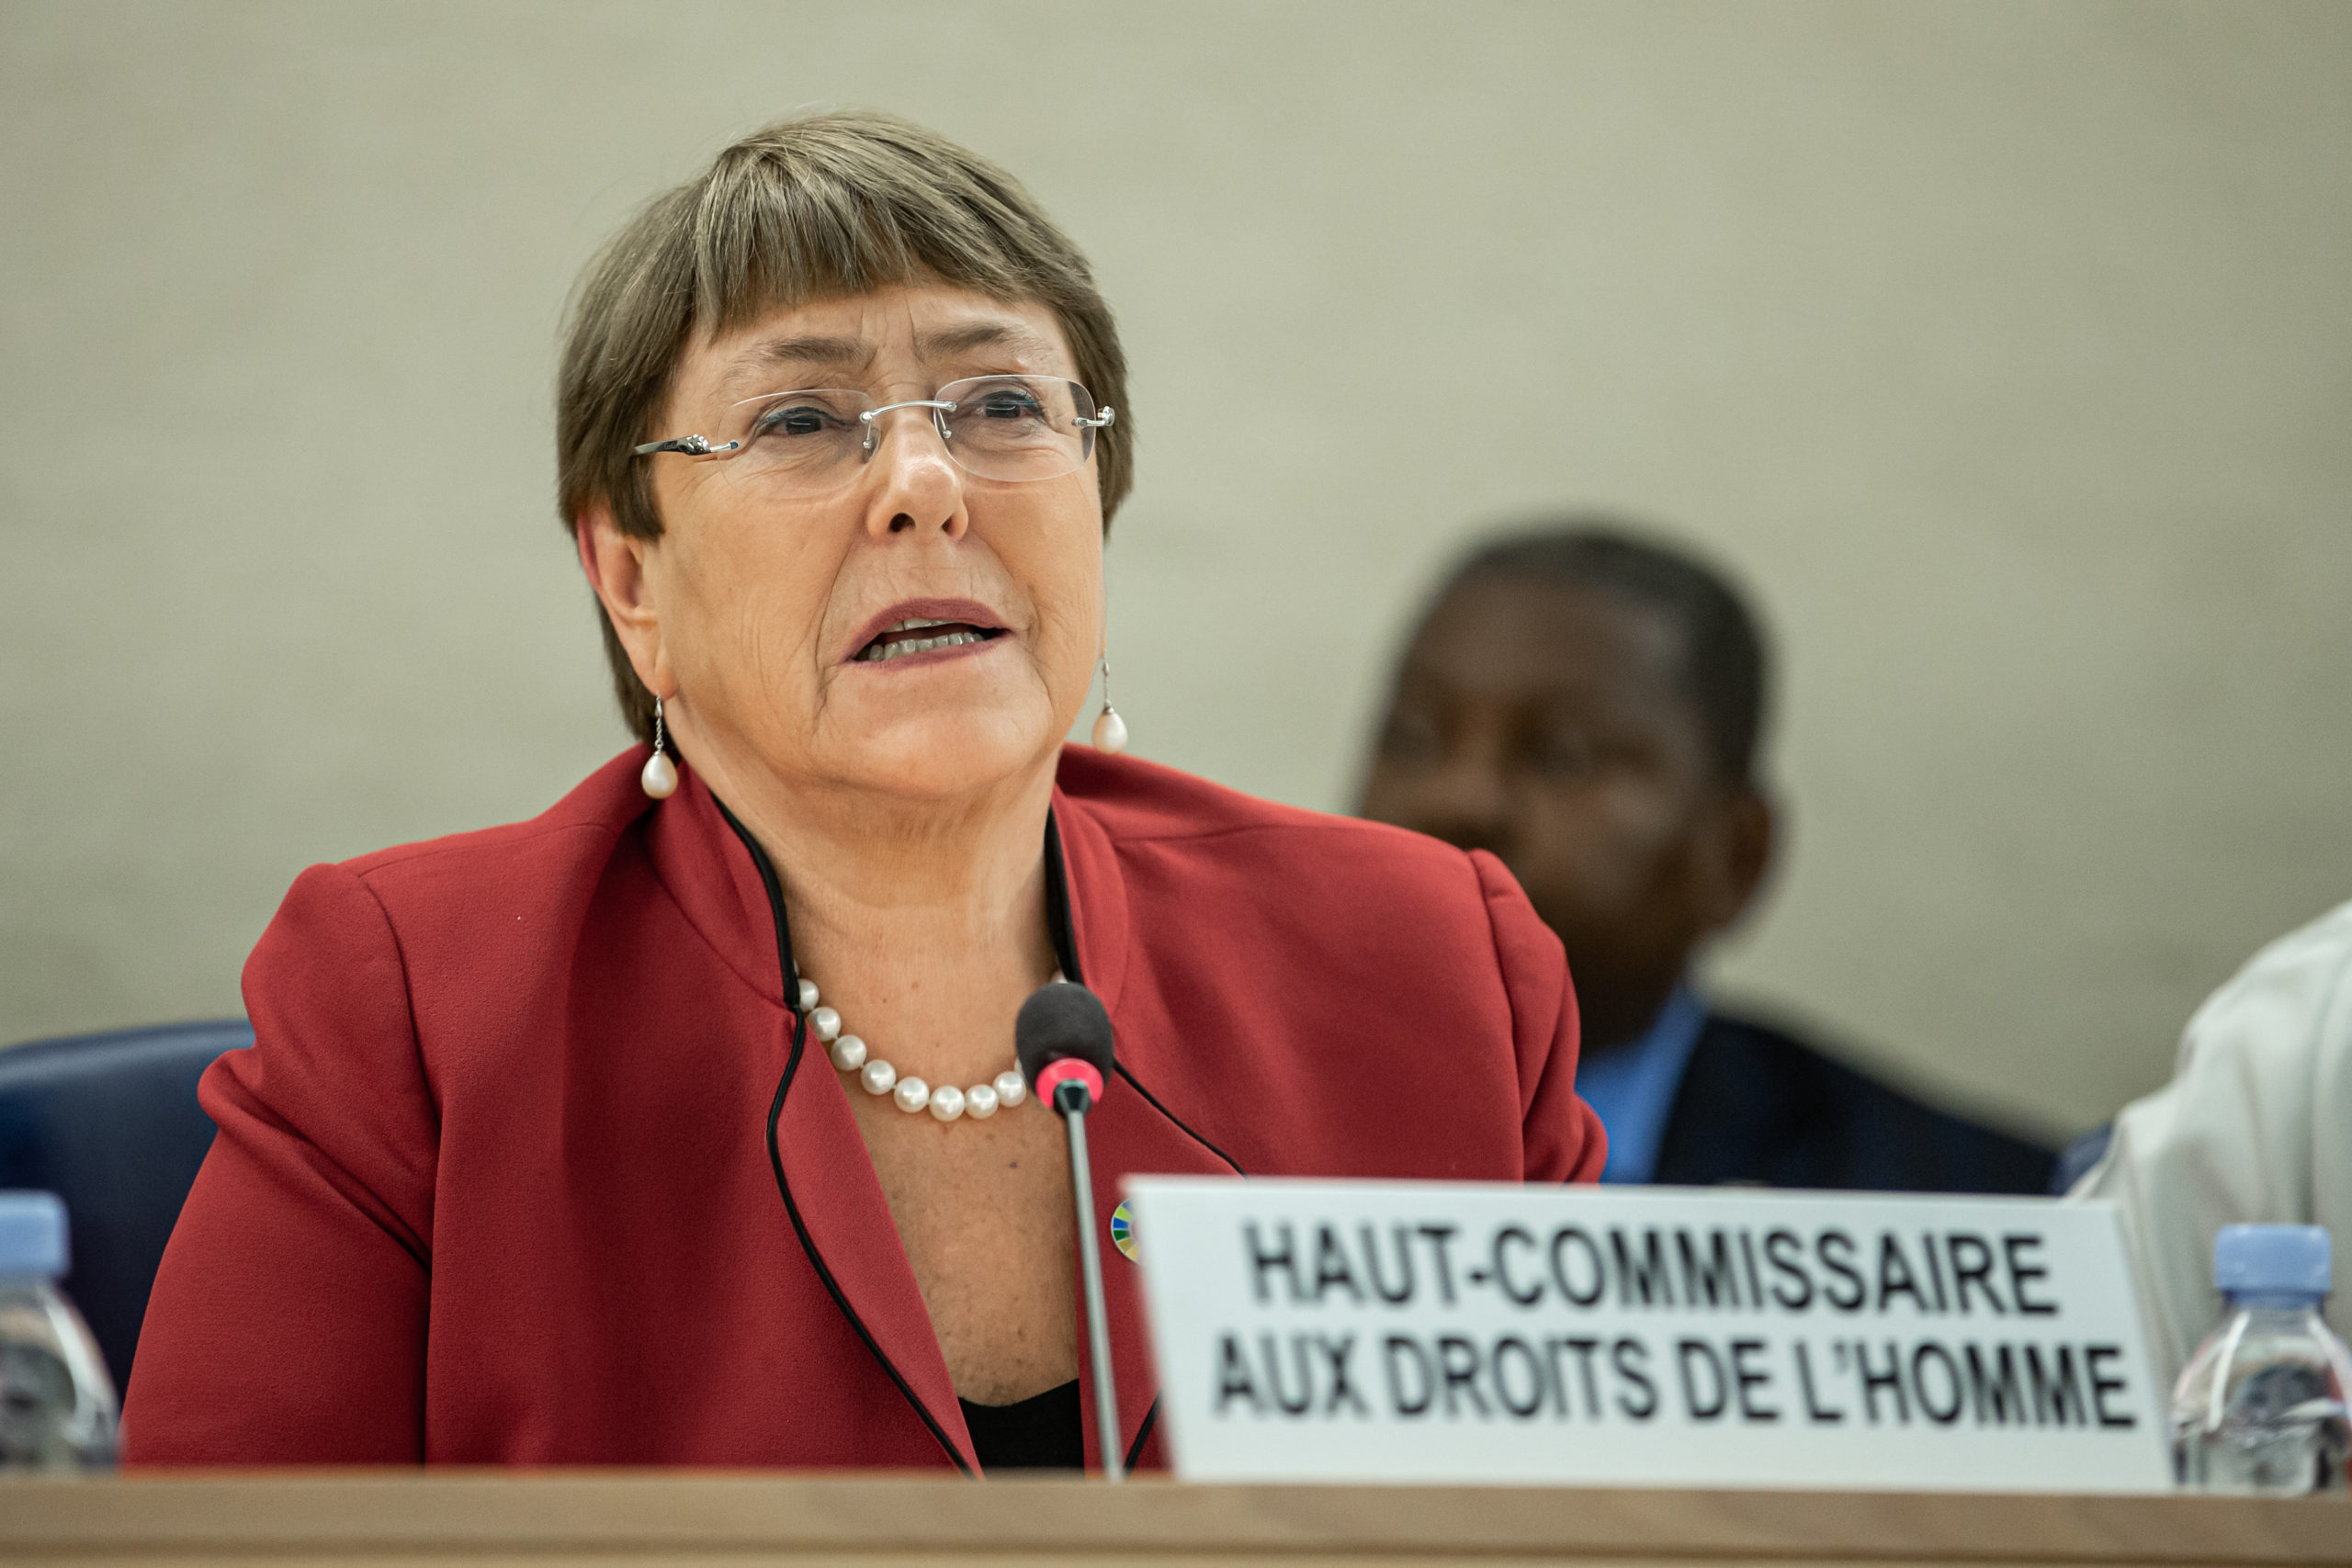 Michelle Bachelet speaking at the 43rd session of the Human Rights Council, February 24, 2020. © UN Photo/Pierre Albouy